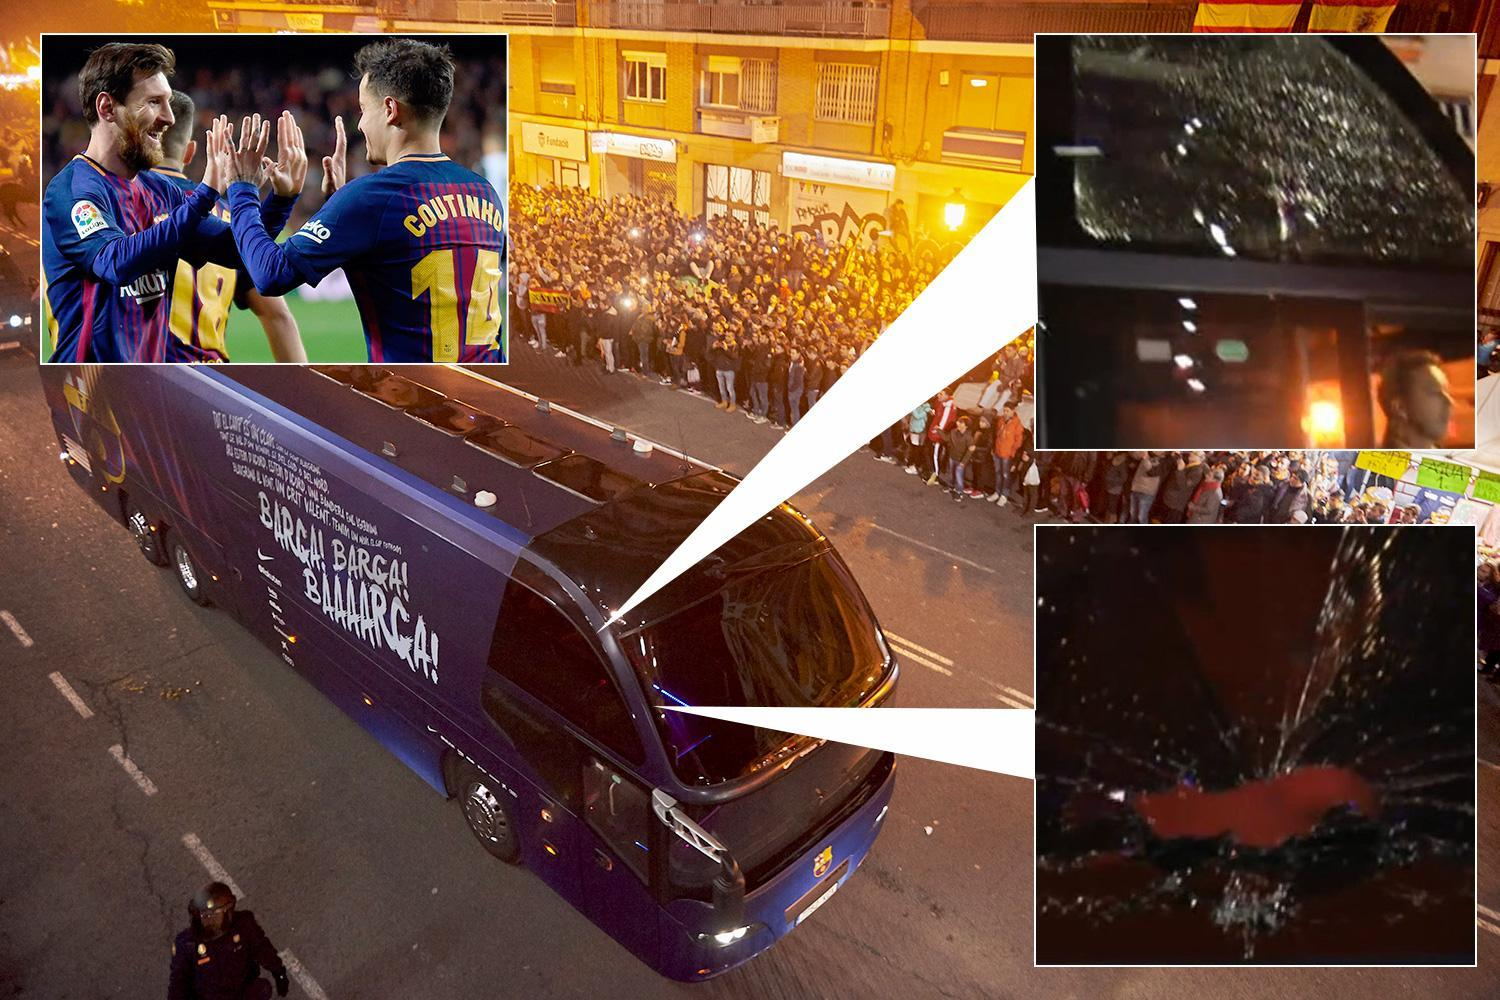 Barcelona's team bus has windows smashed by angry Valencia 'fans' after knocking rivals out of Copa del Rey